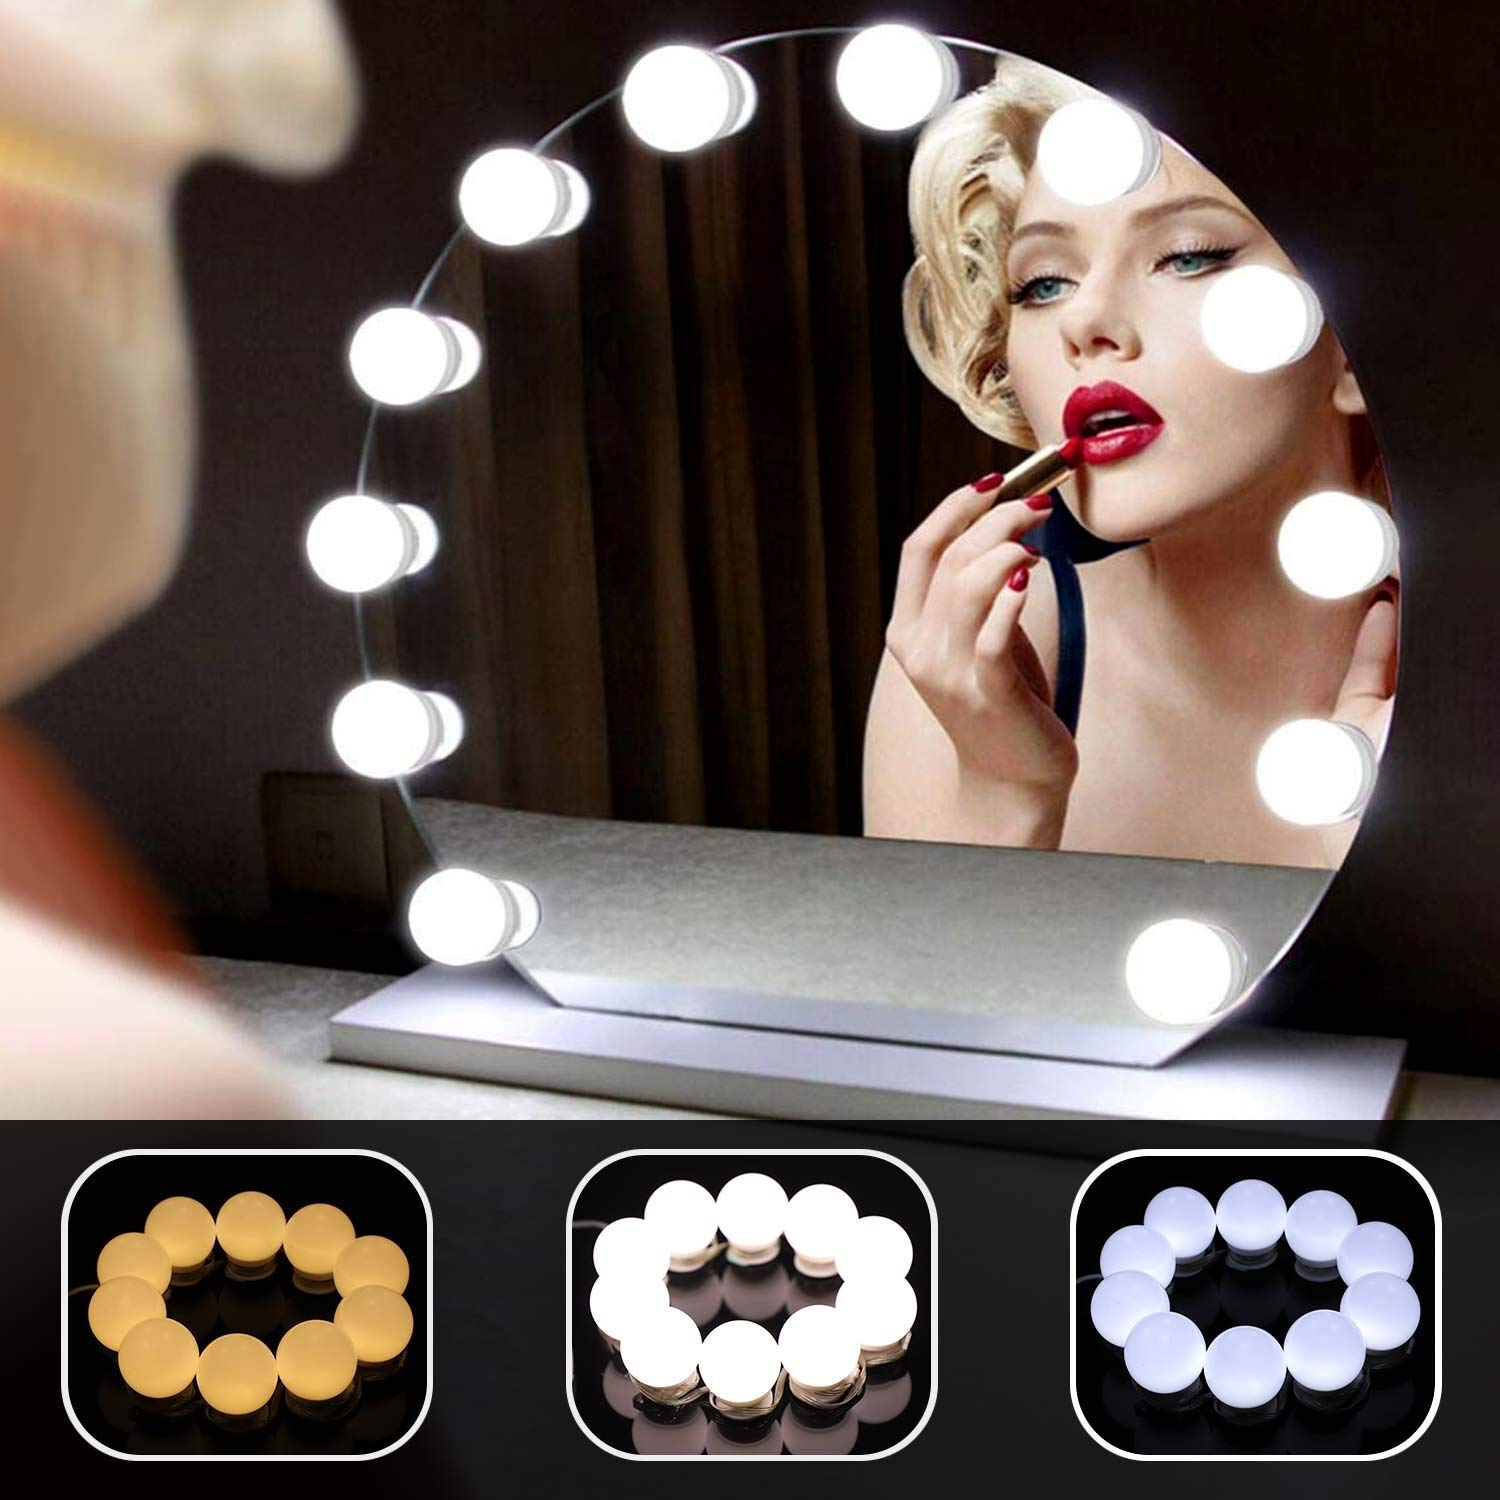 Hollywood Style LED Vanity Mirror Lights Kit, 10 Dimmable Bulbs with 3 Color Lighting Modes Makeup Mirror Lighting Fixture and Memory Function for Vanity Table Set, Bathroom Dressing Room